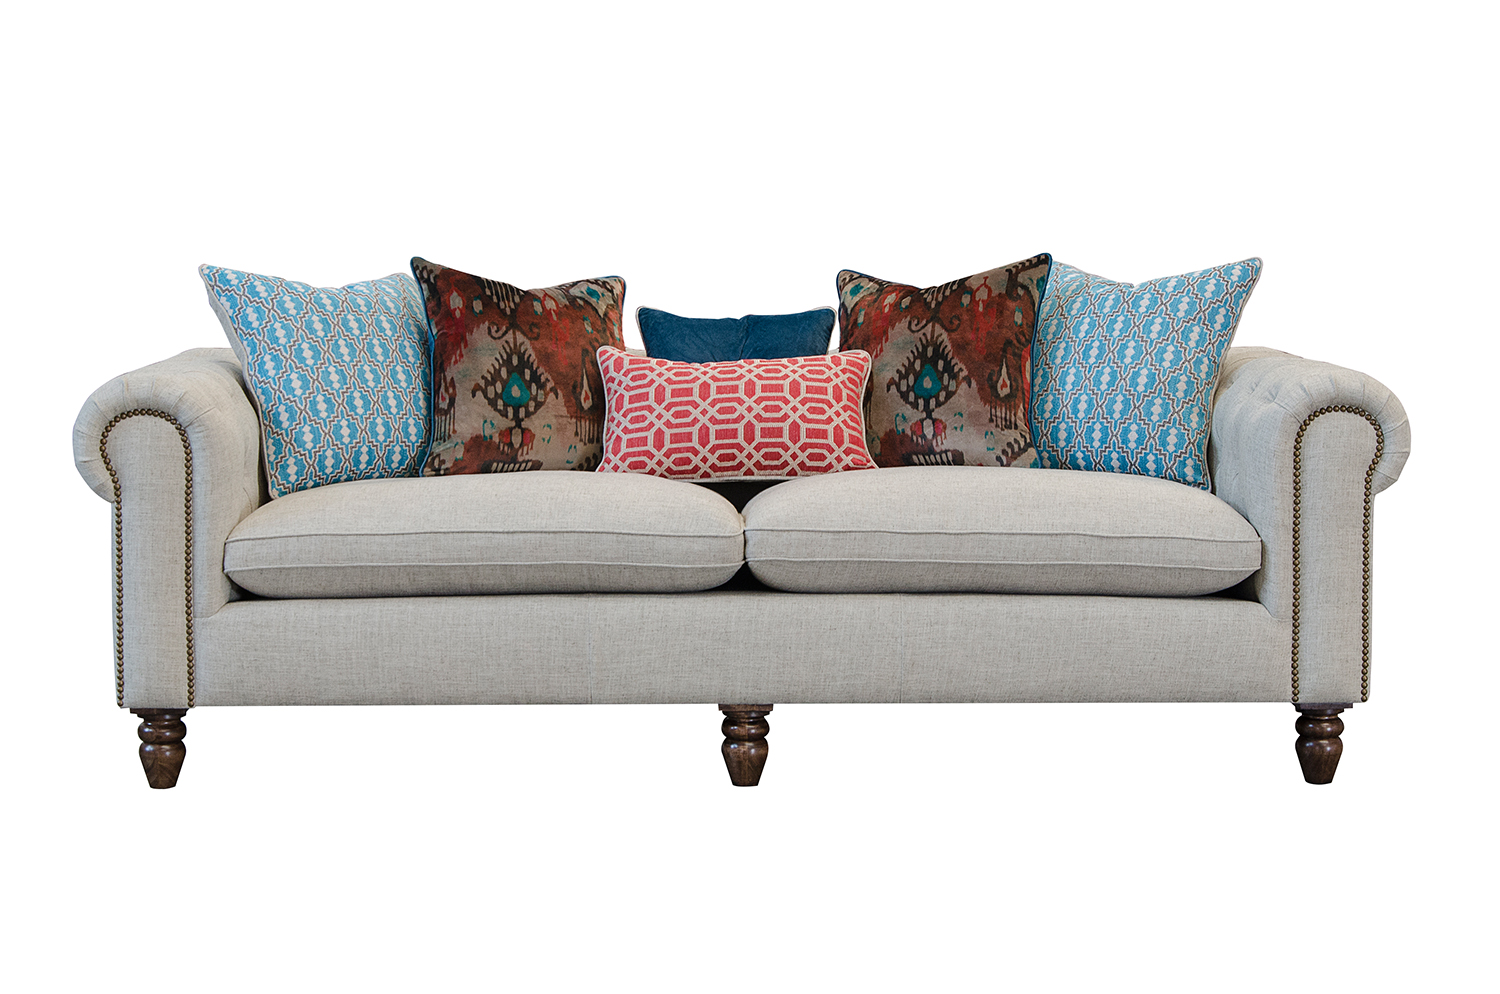 alec leather sofa collection pottery barn seabury review audrey maxi alexander and james